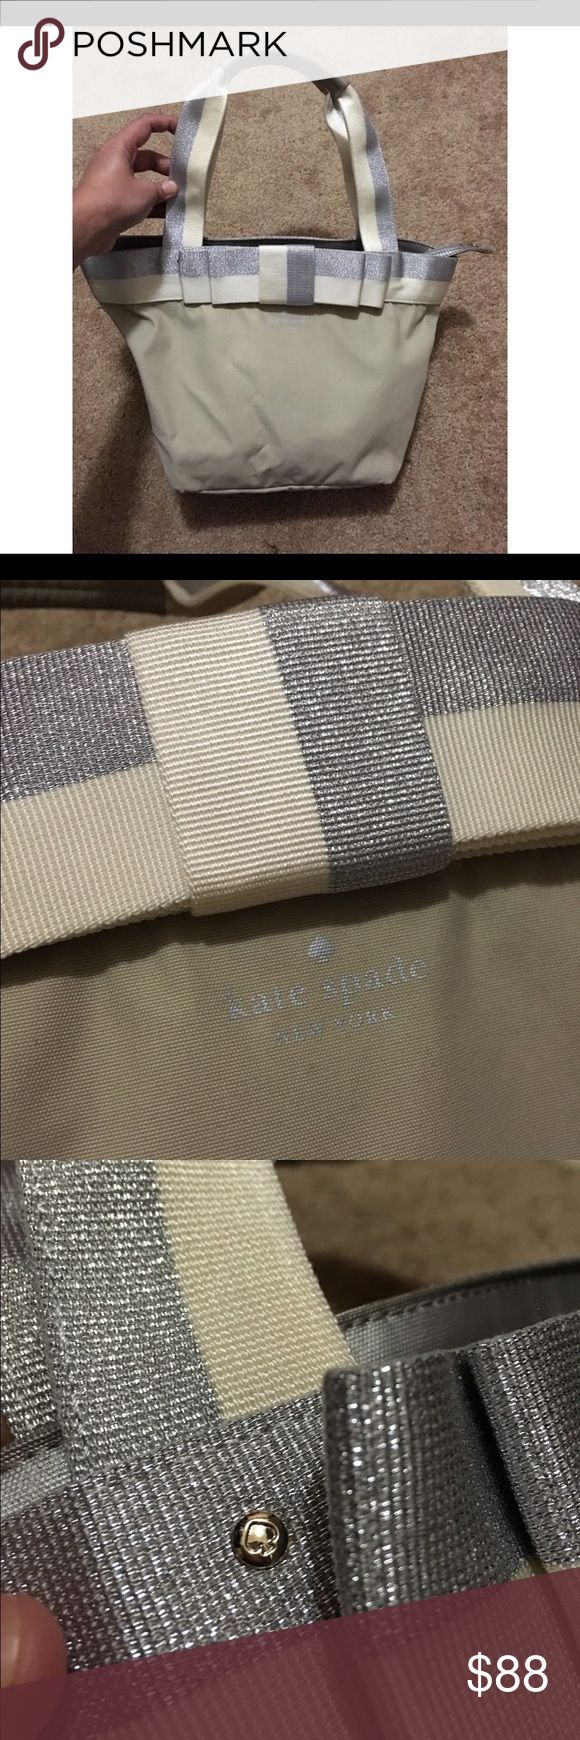 Kate Spade NY Barrow Street Garri Bow Tote Bag Kate Spade New York Barrow Street Garri Bow Beige/ Silver Tote Bag; Used; Condition 9.5/10; ONLY FLAW: Last photo shows scuff marks inside zipper kate spade Bags Totes